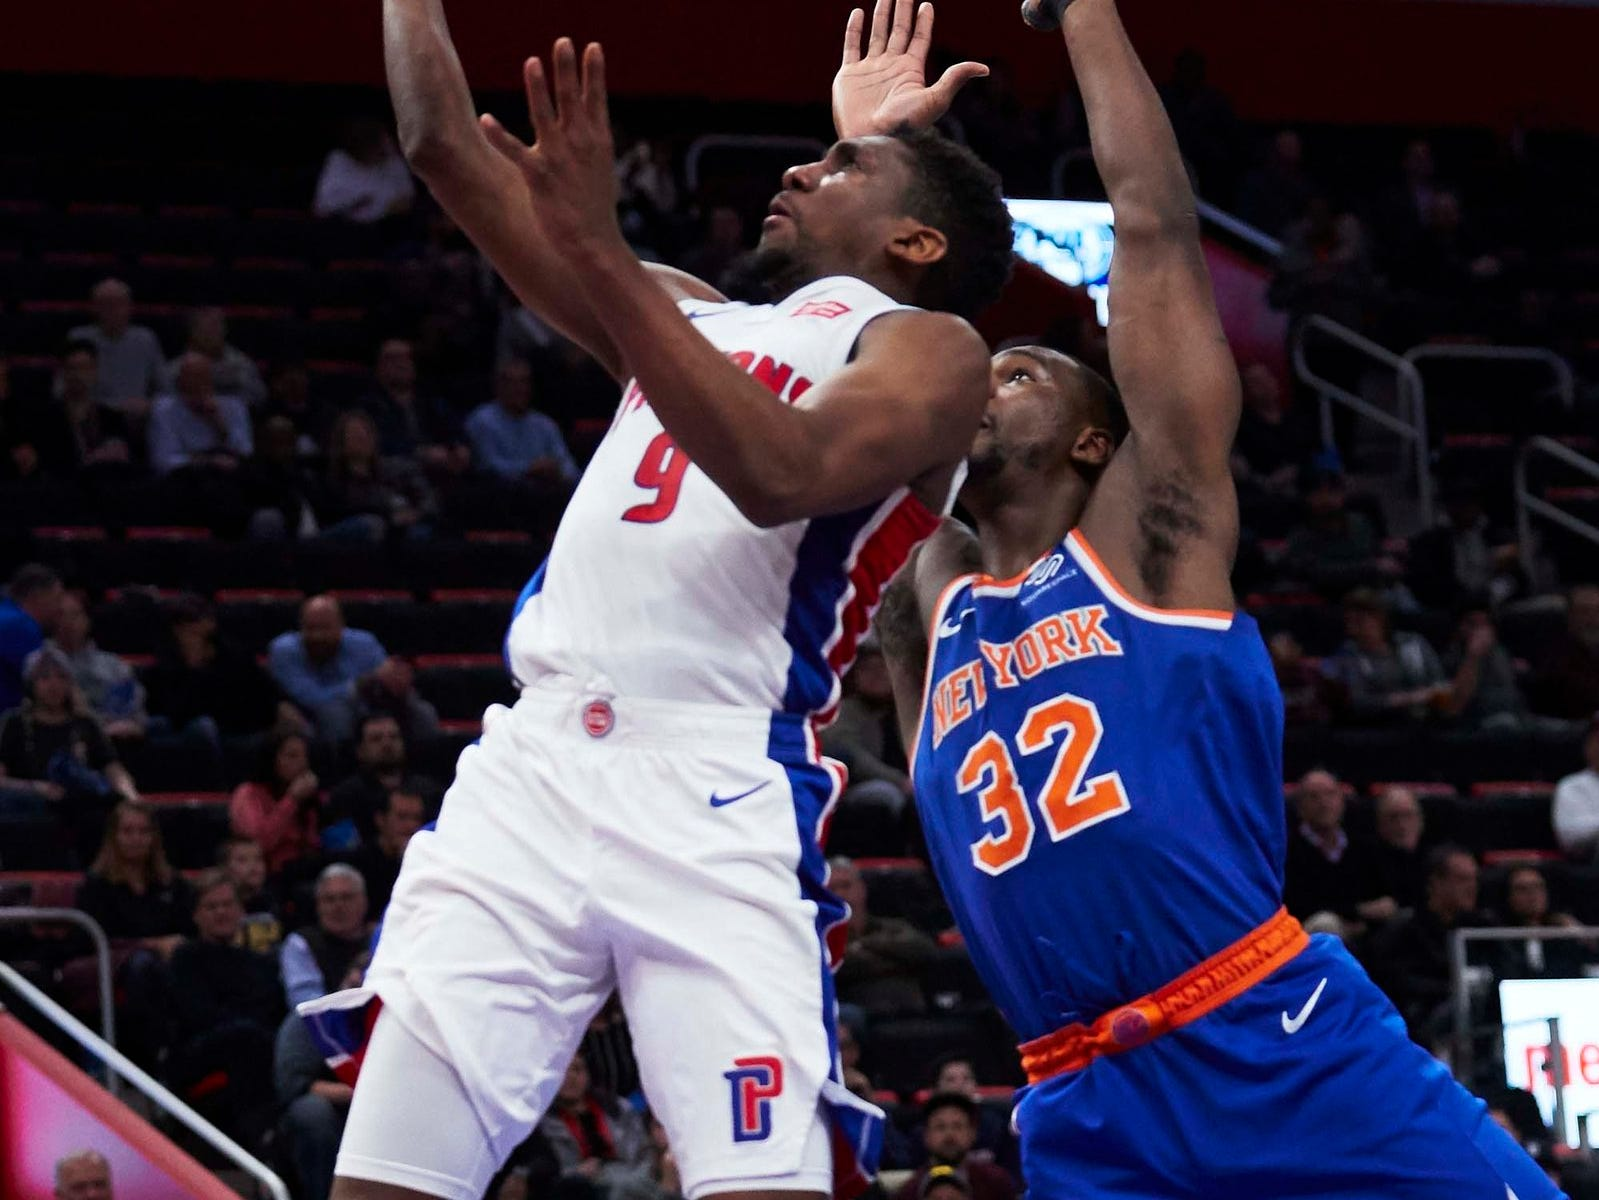 Detroit Pistons guard Langston Galloway (9) shoots on New York Knicks forward Noah Vonleh (32) in the first half at Little Caesars Arena.